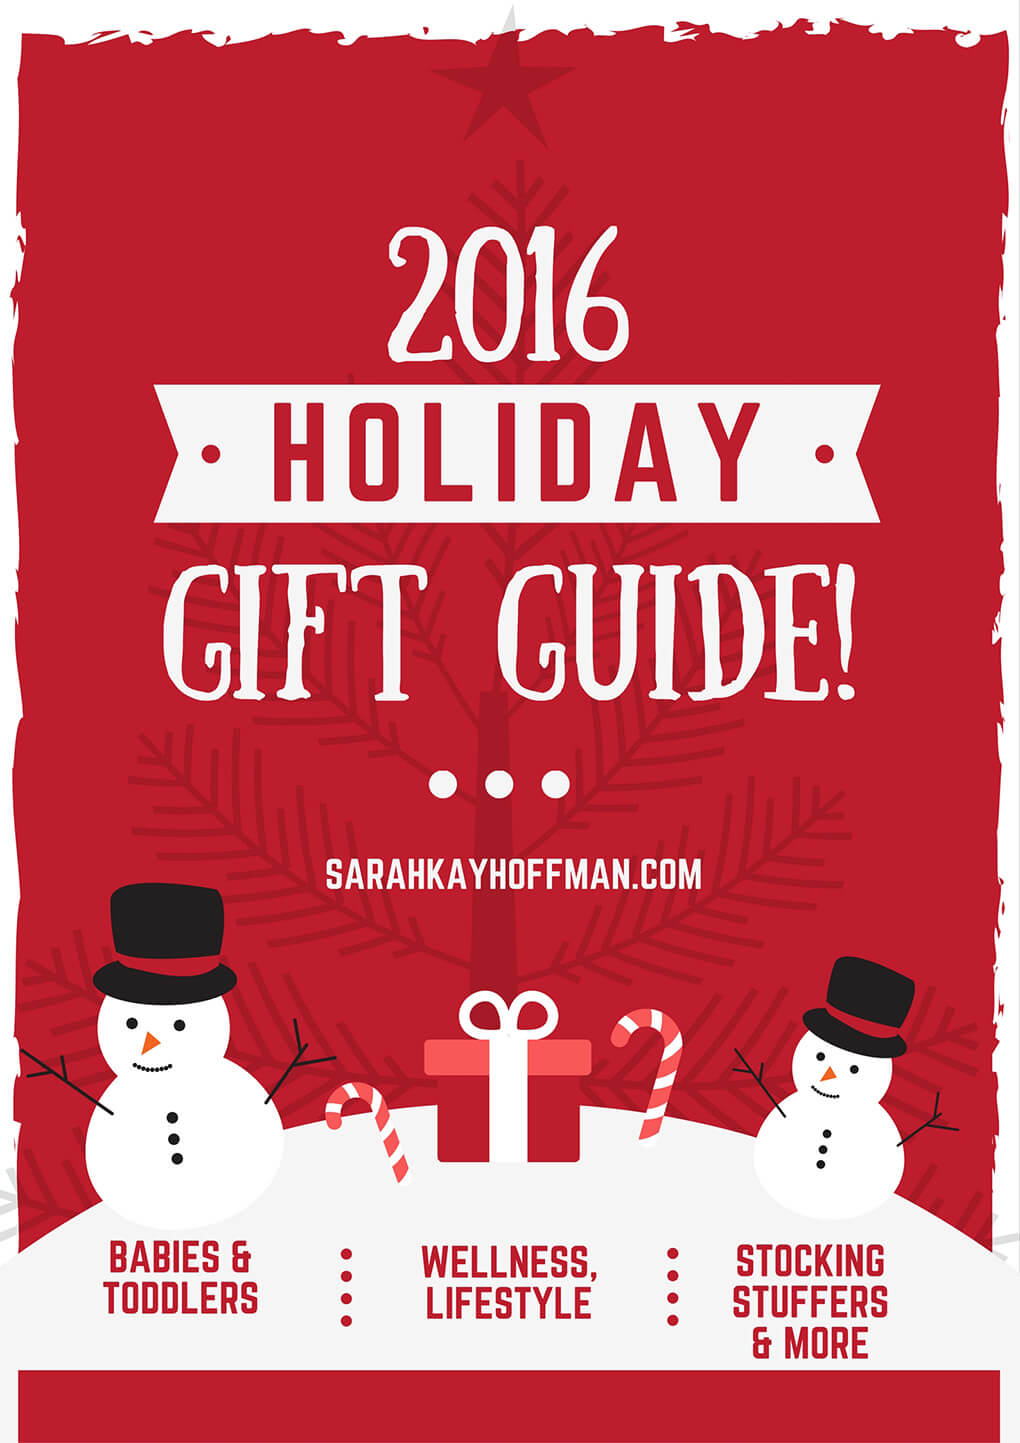 57 Holiday Gift Ideas for Babies and Toddlers sarahkayhoffman.com Holiday Gift Guide 2016